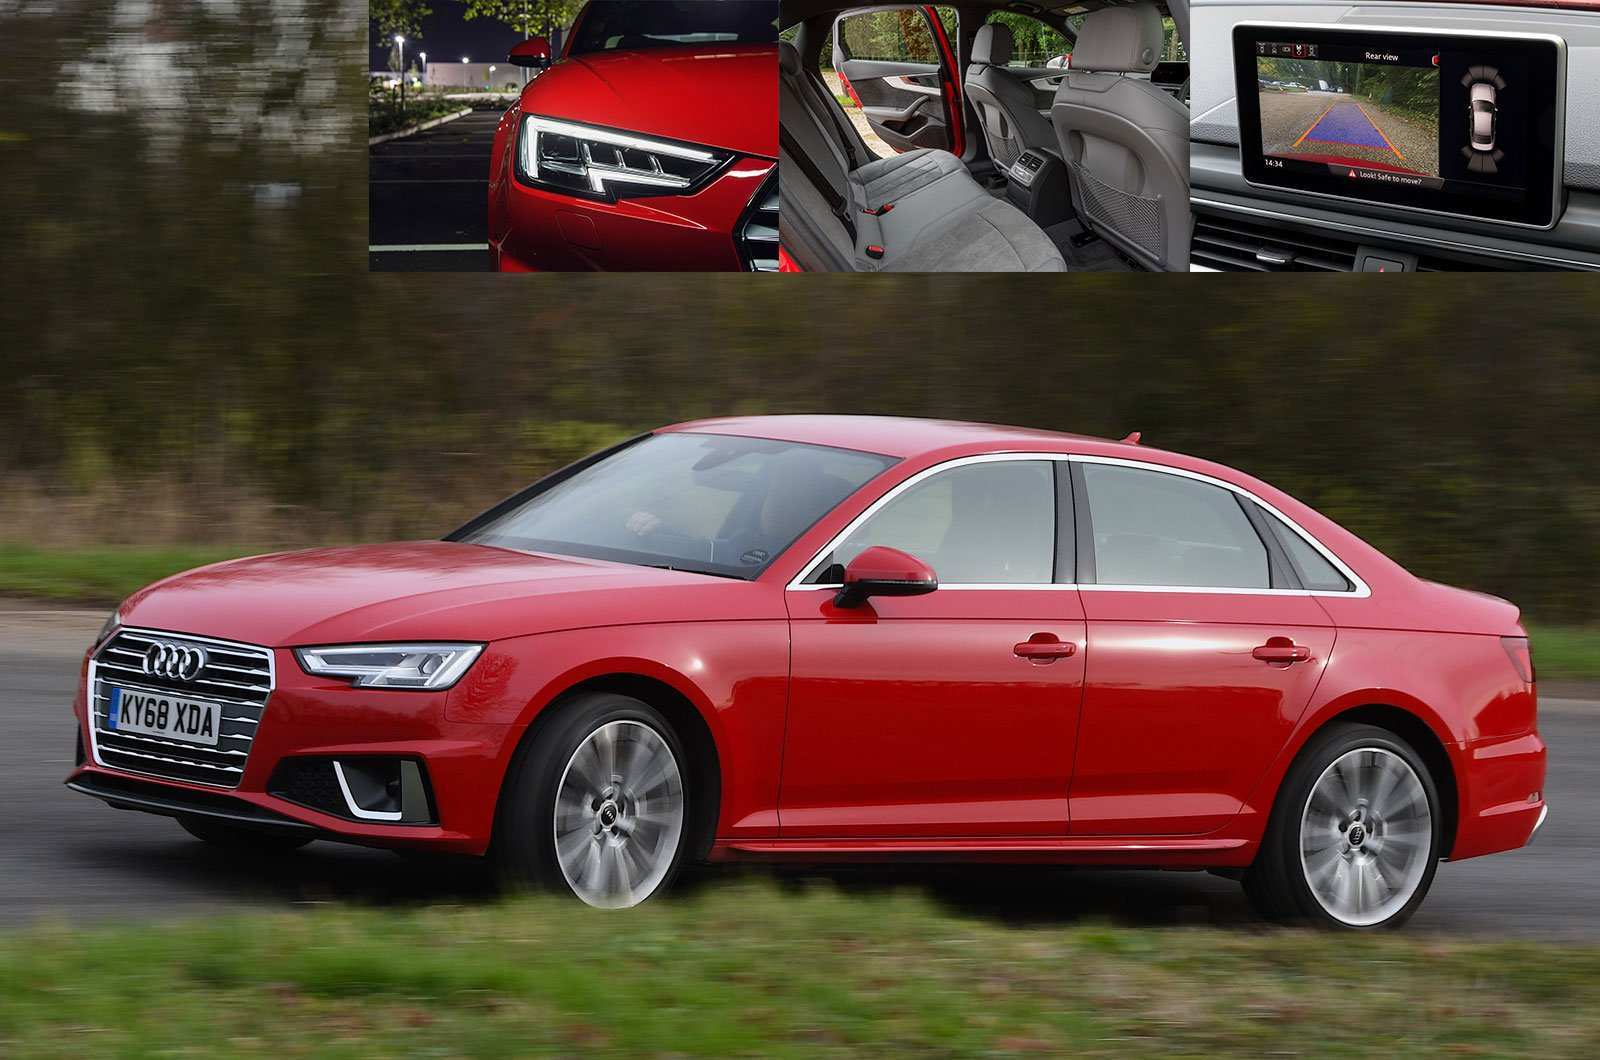 55 Gallery of New A4 Audi 2019 Spesification New Review with New A4 Audi 2019 Spesification